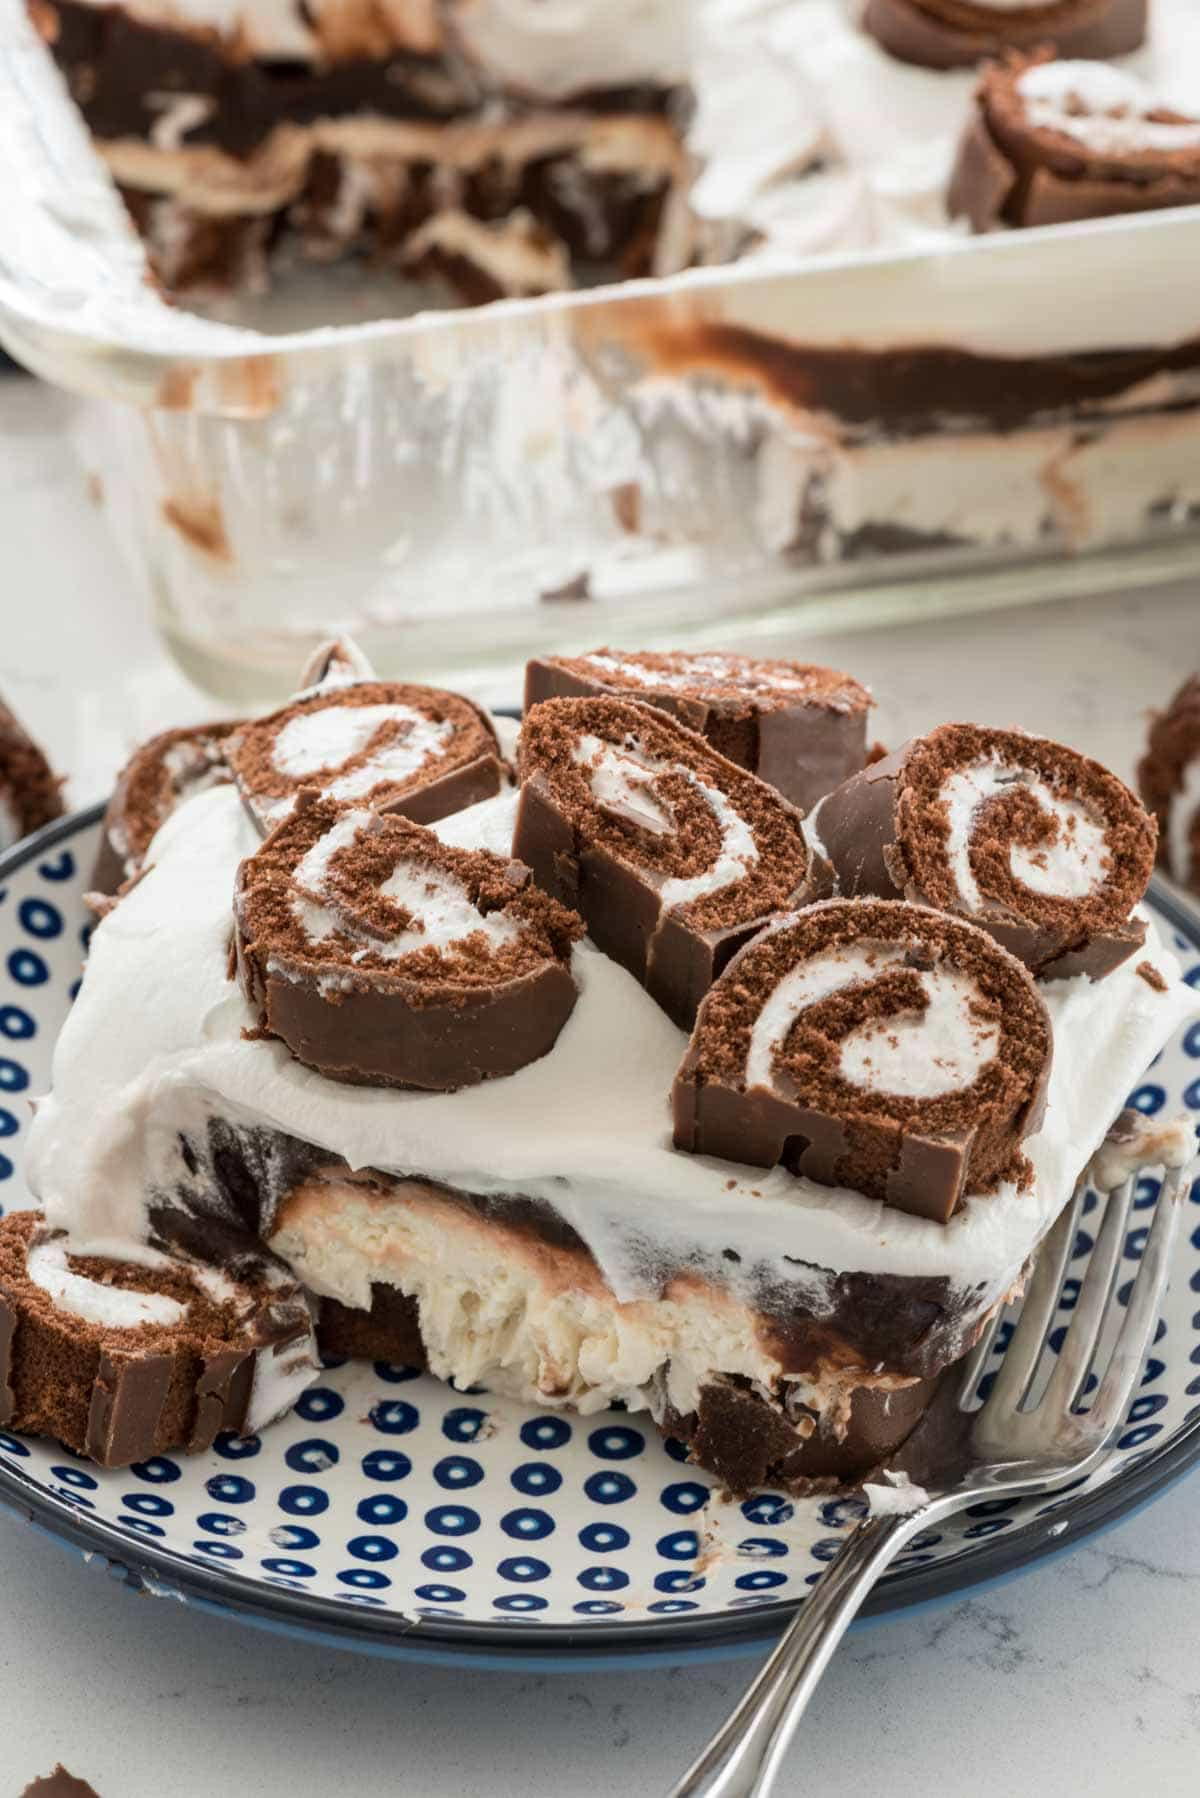 Easy Desserts To Bake  Swiss Roll Layered No Bake Dessert Crazy for Crust